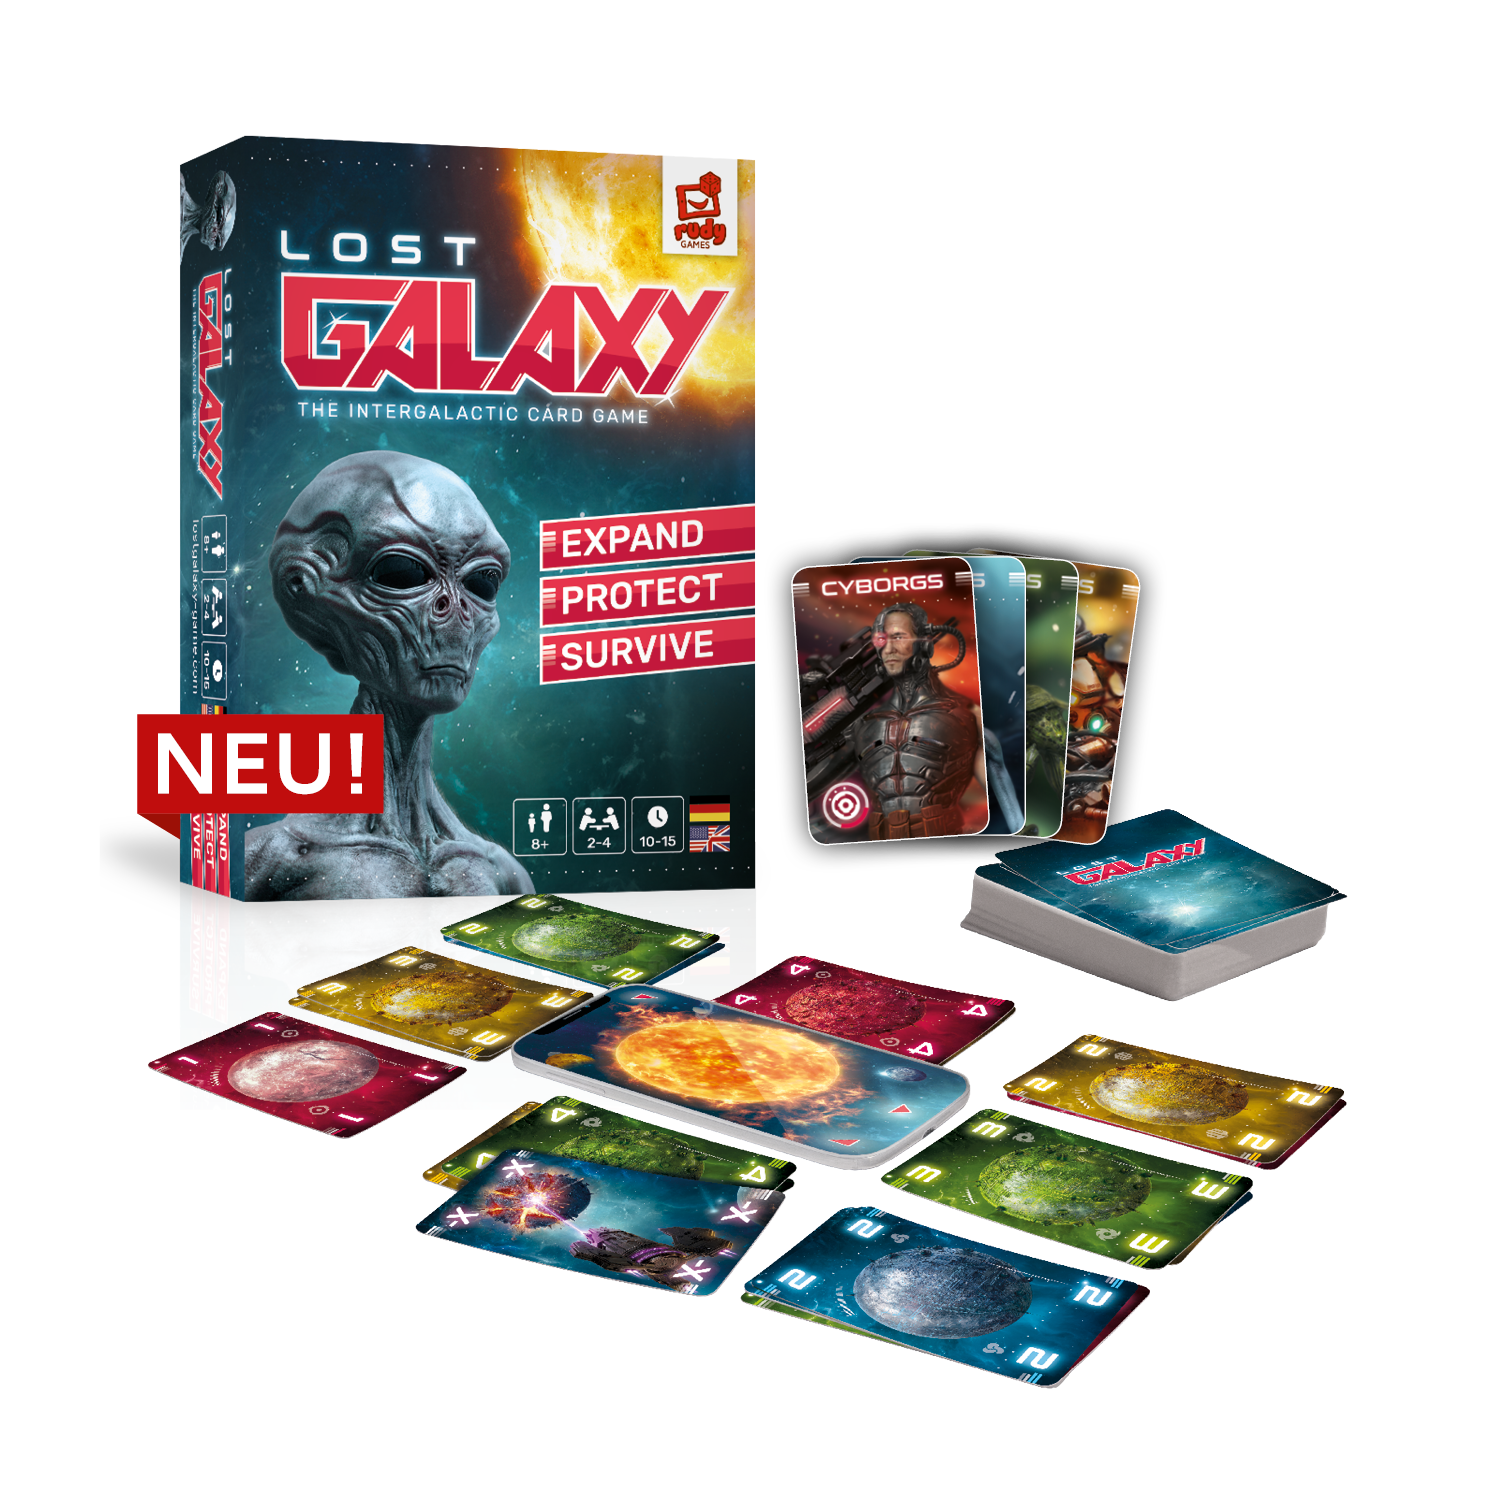 Lost Galaxy Game Material